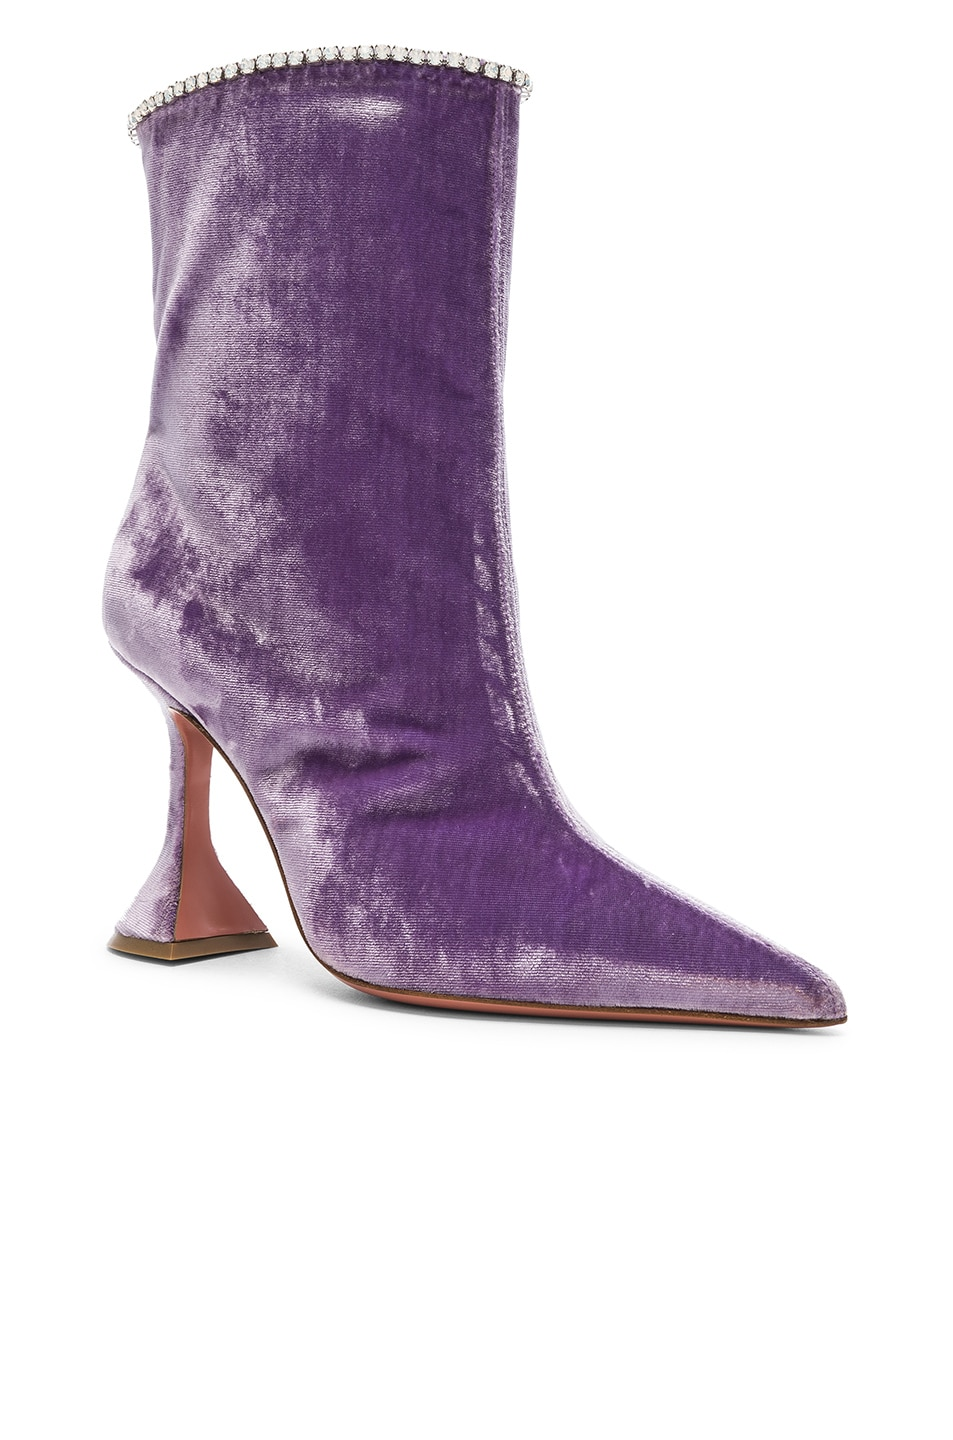 Image 2 of AMINA MUADDI Velvet Mia Boots in Lilac & Crystals